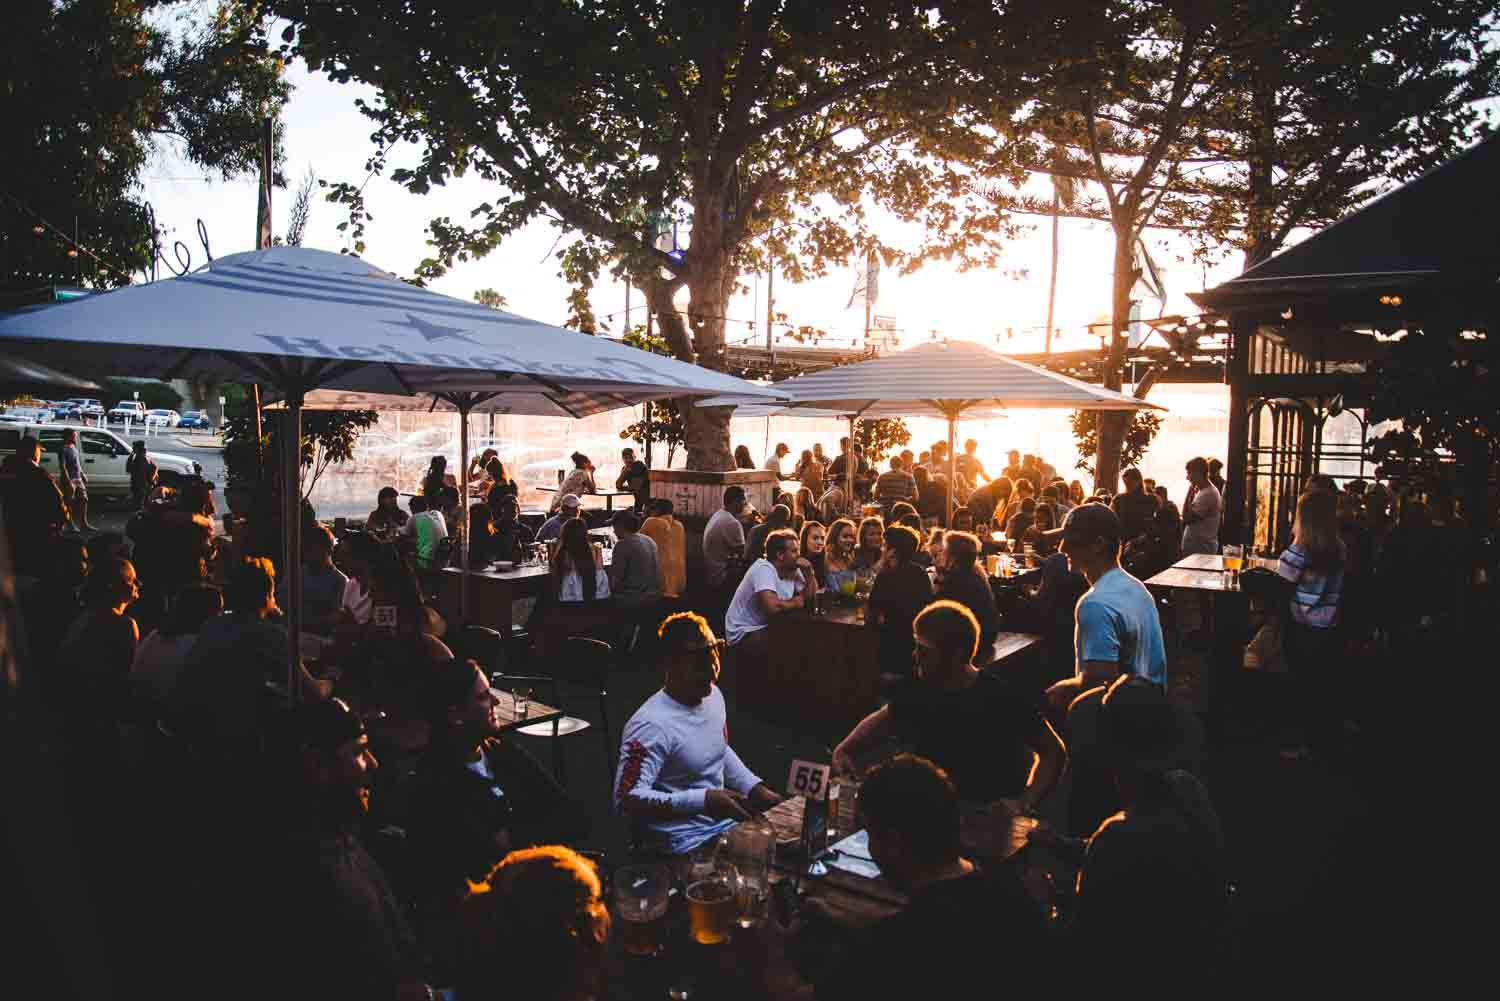 The Left Bank – Best Beer Gardens